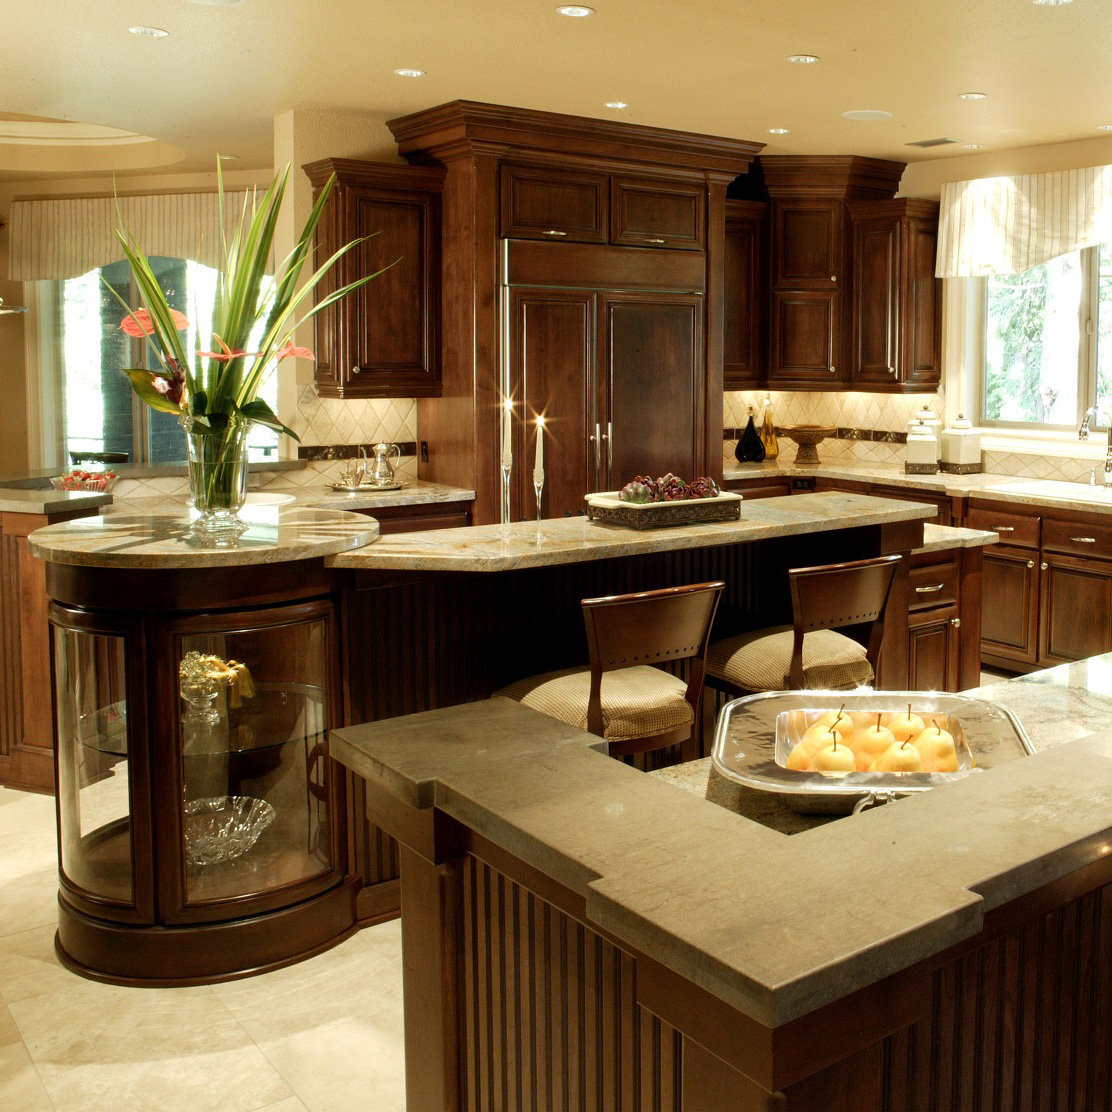 Flush Inset Cabinetry Requires Extra Time To Manufacture And Install Due To  The Precision That Is Part Of This Design. Again, Crown Moldings Or Other  ...